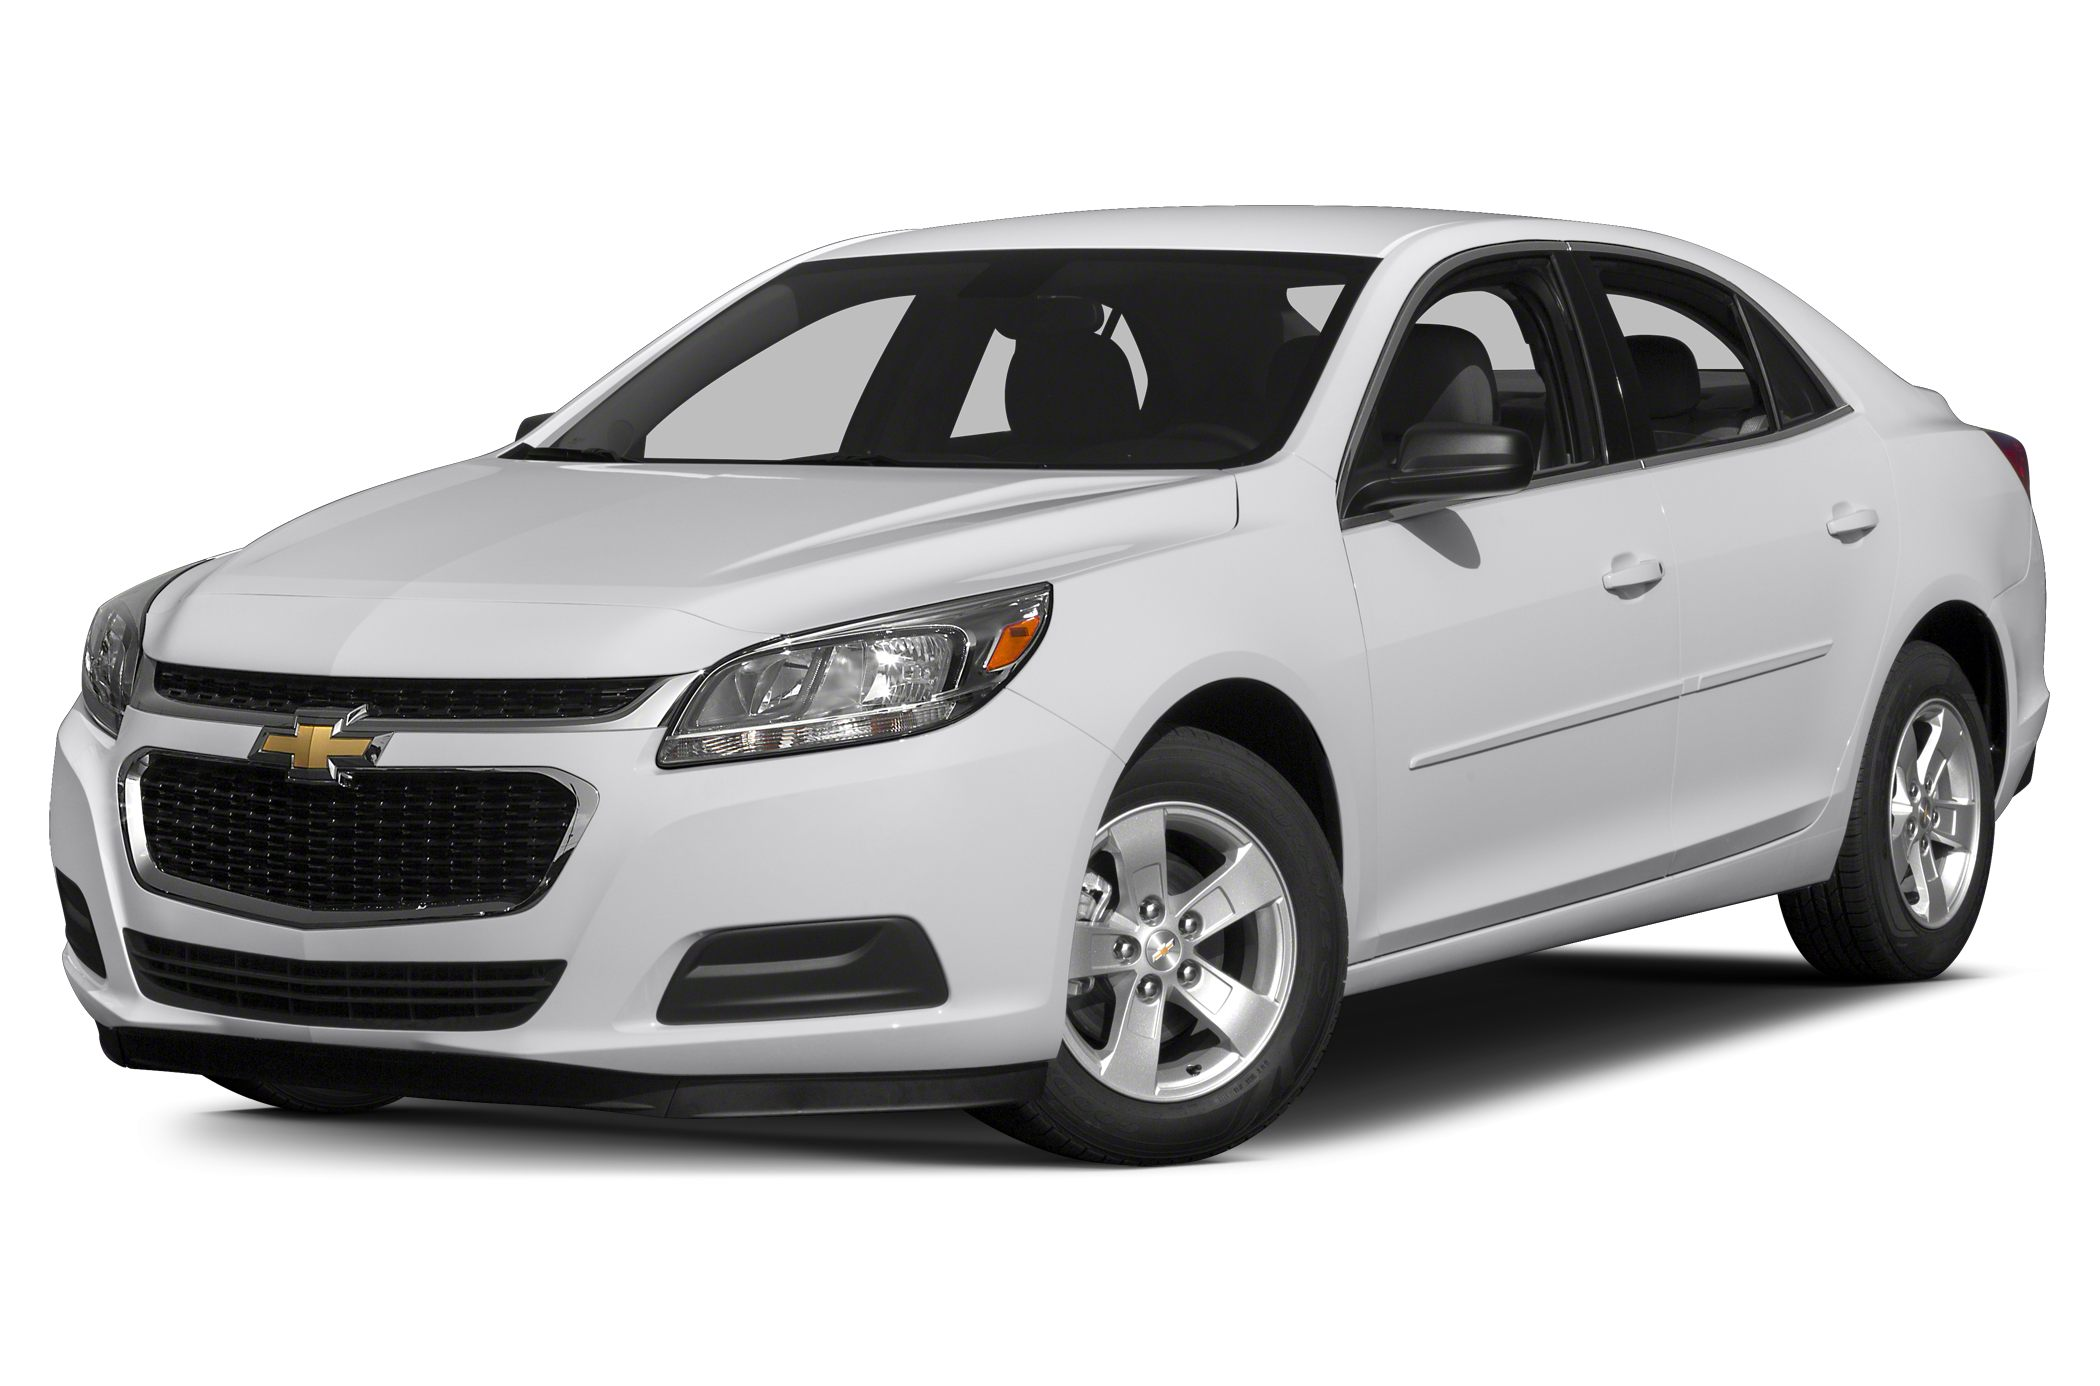 2015 Chevrolet Malibu 1LT Sedan for sale in Columbus for $26,000 with 0 miles